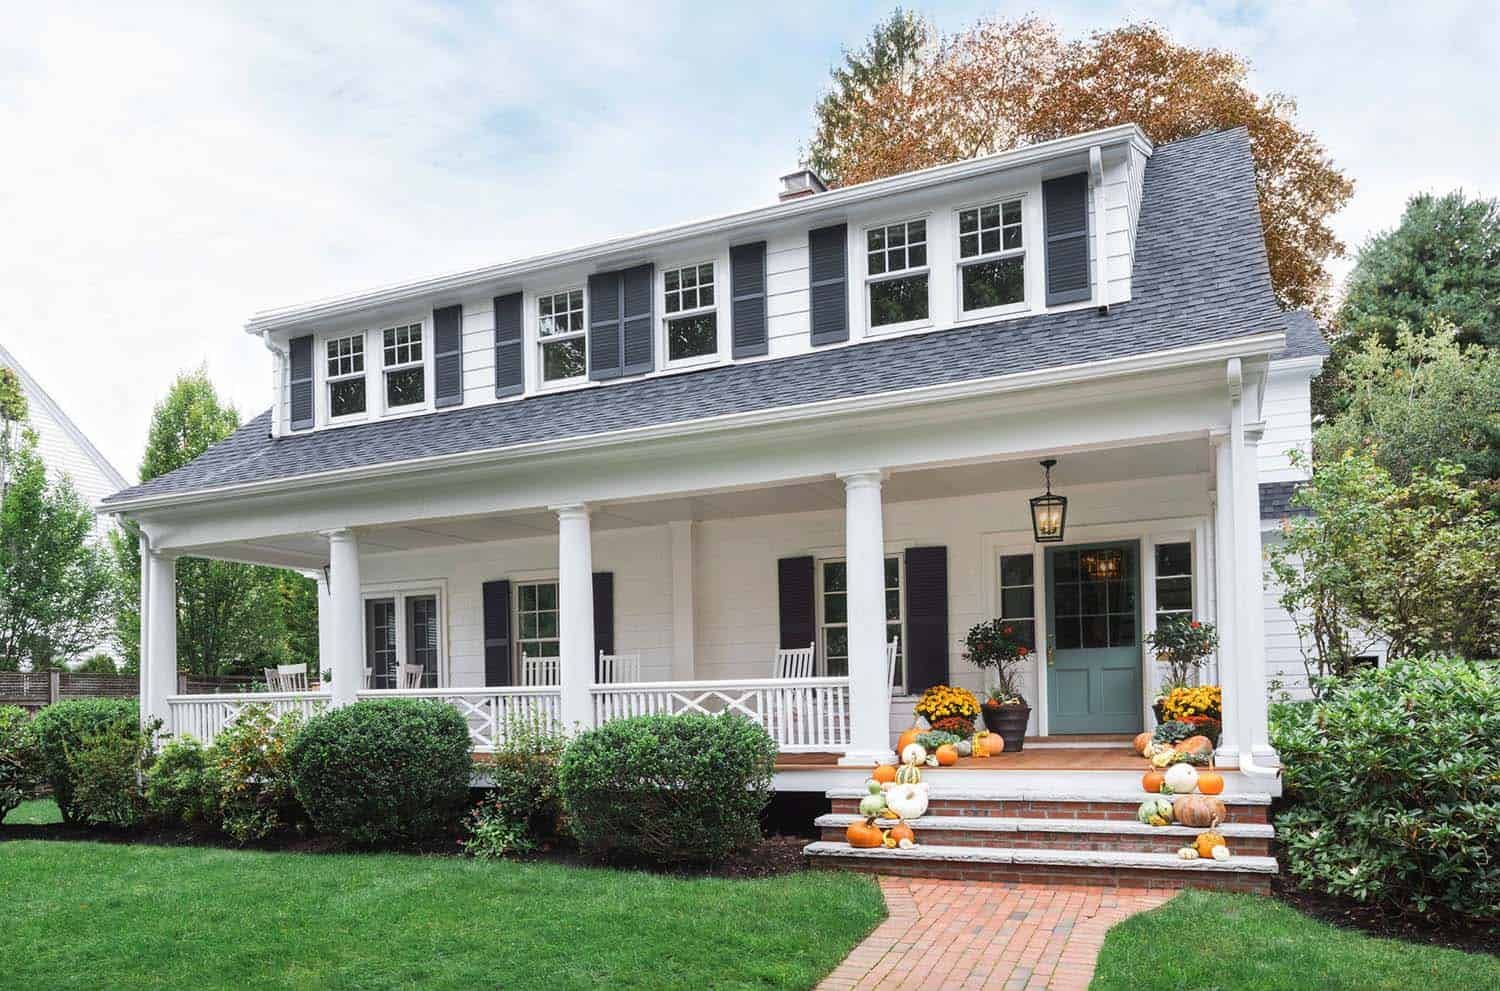 Beautifully renovated Dutch Colonial style home nestled in